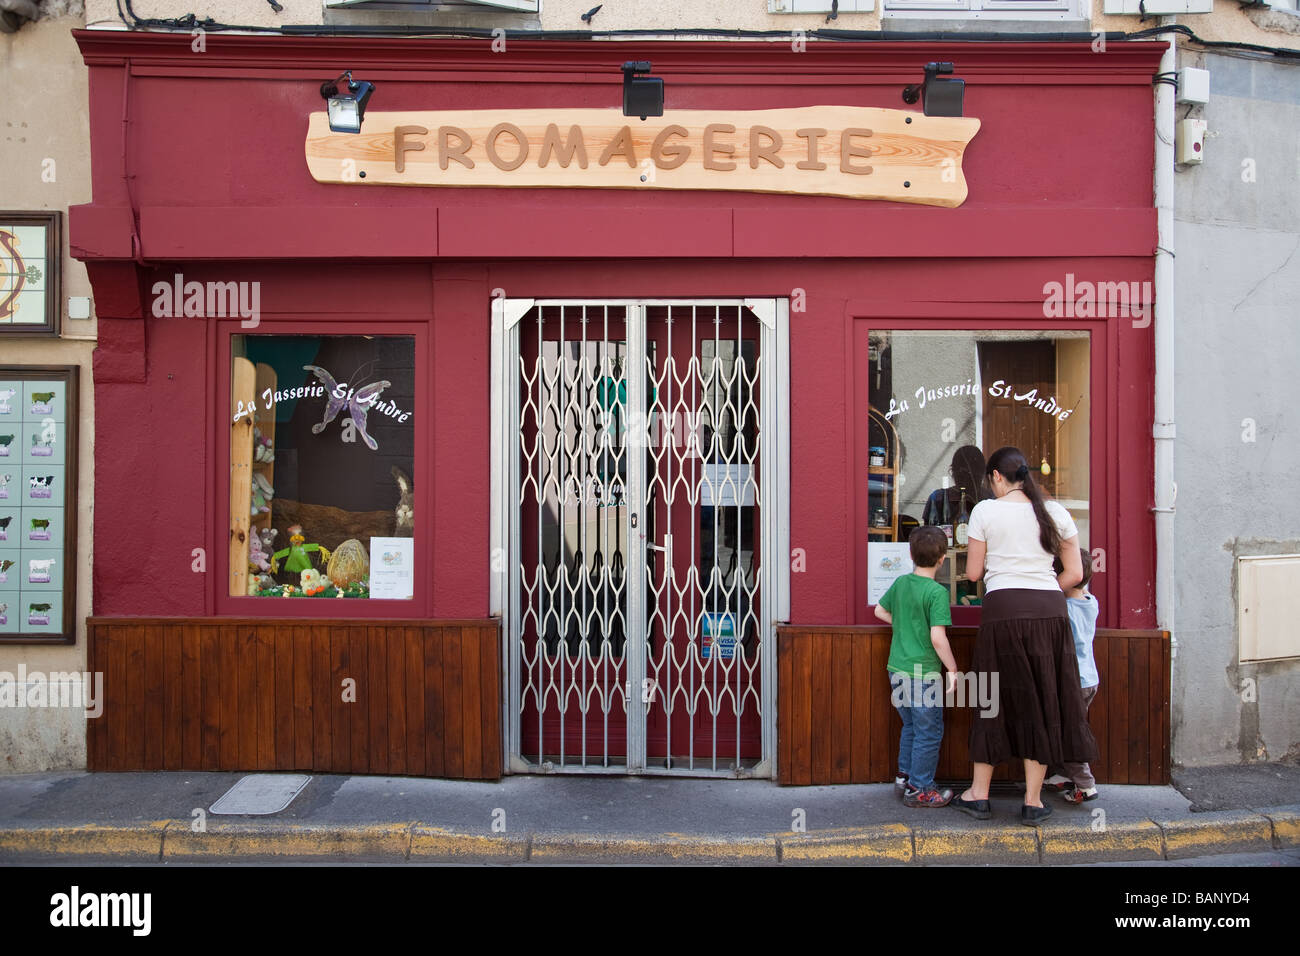 Fromagerie in Saint Just Saint Rambert in Loire department of central France - Stock Image